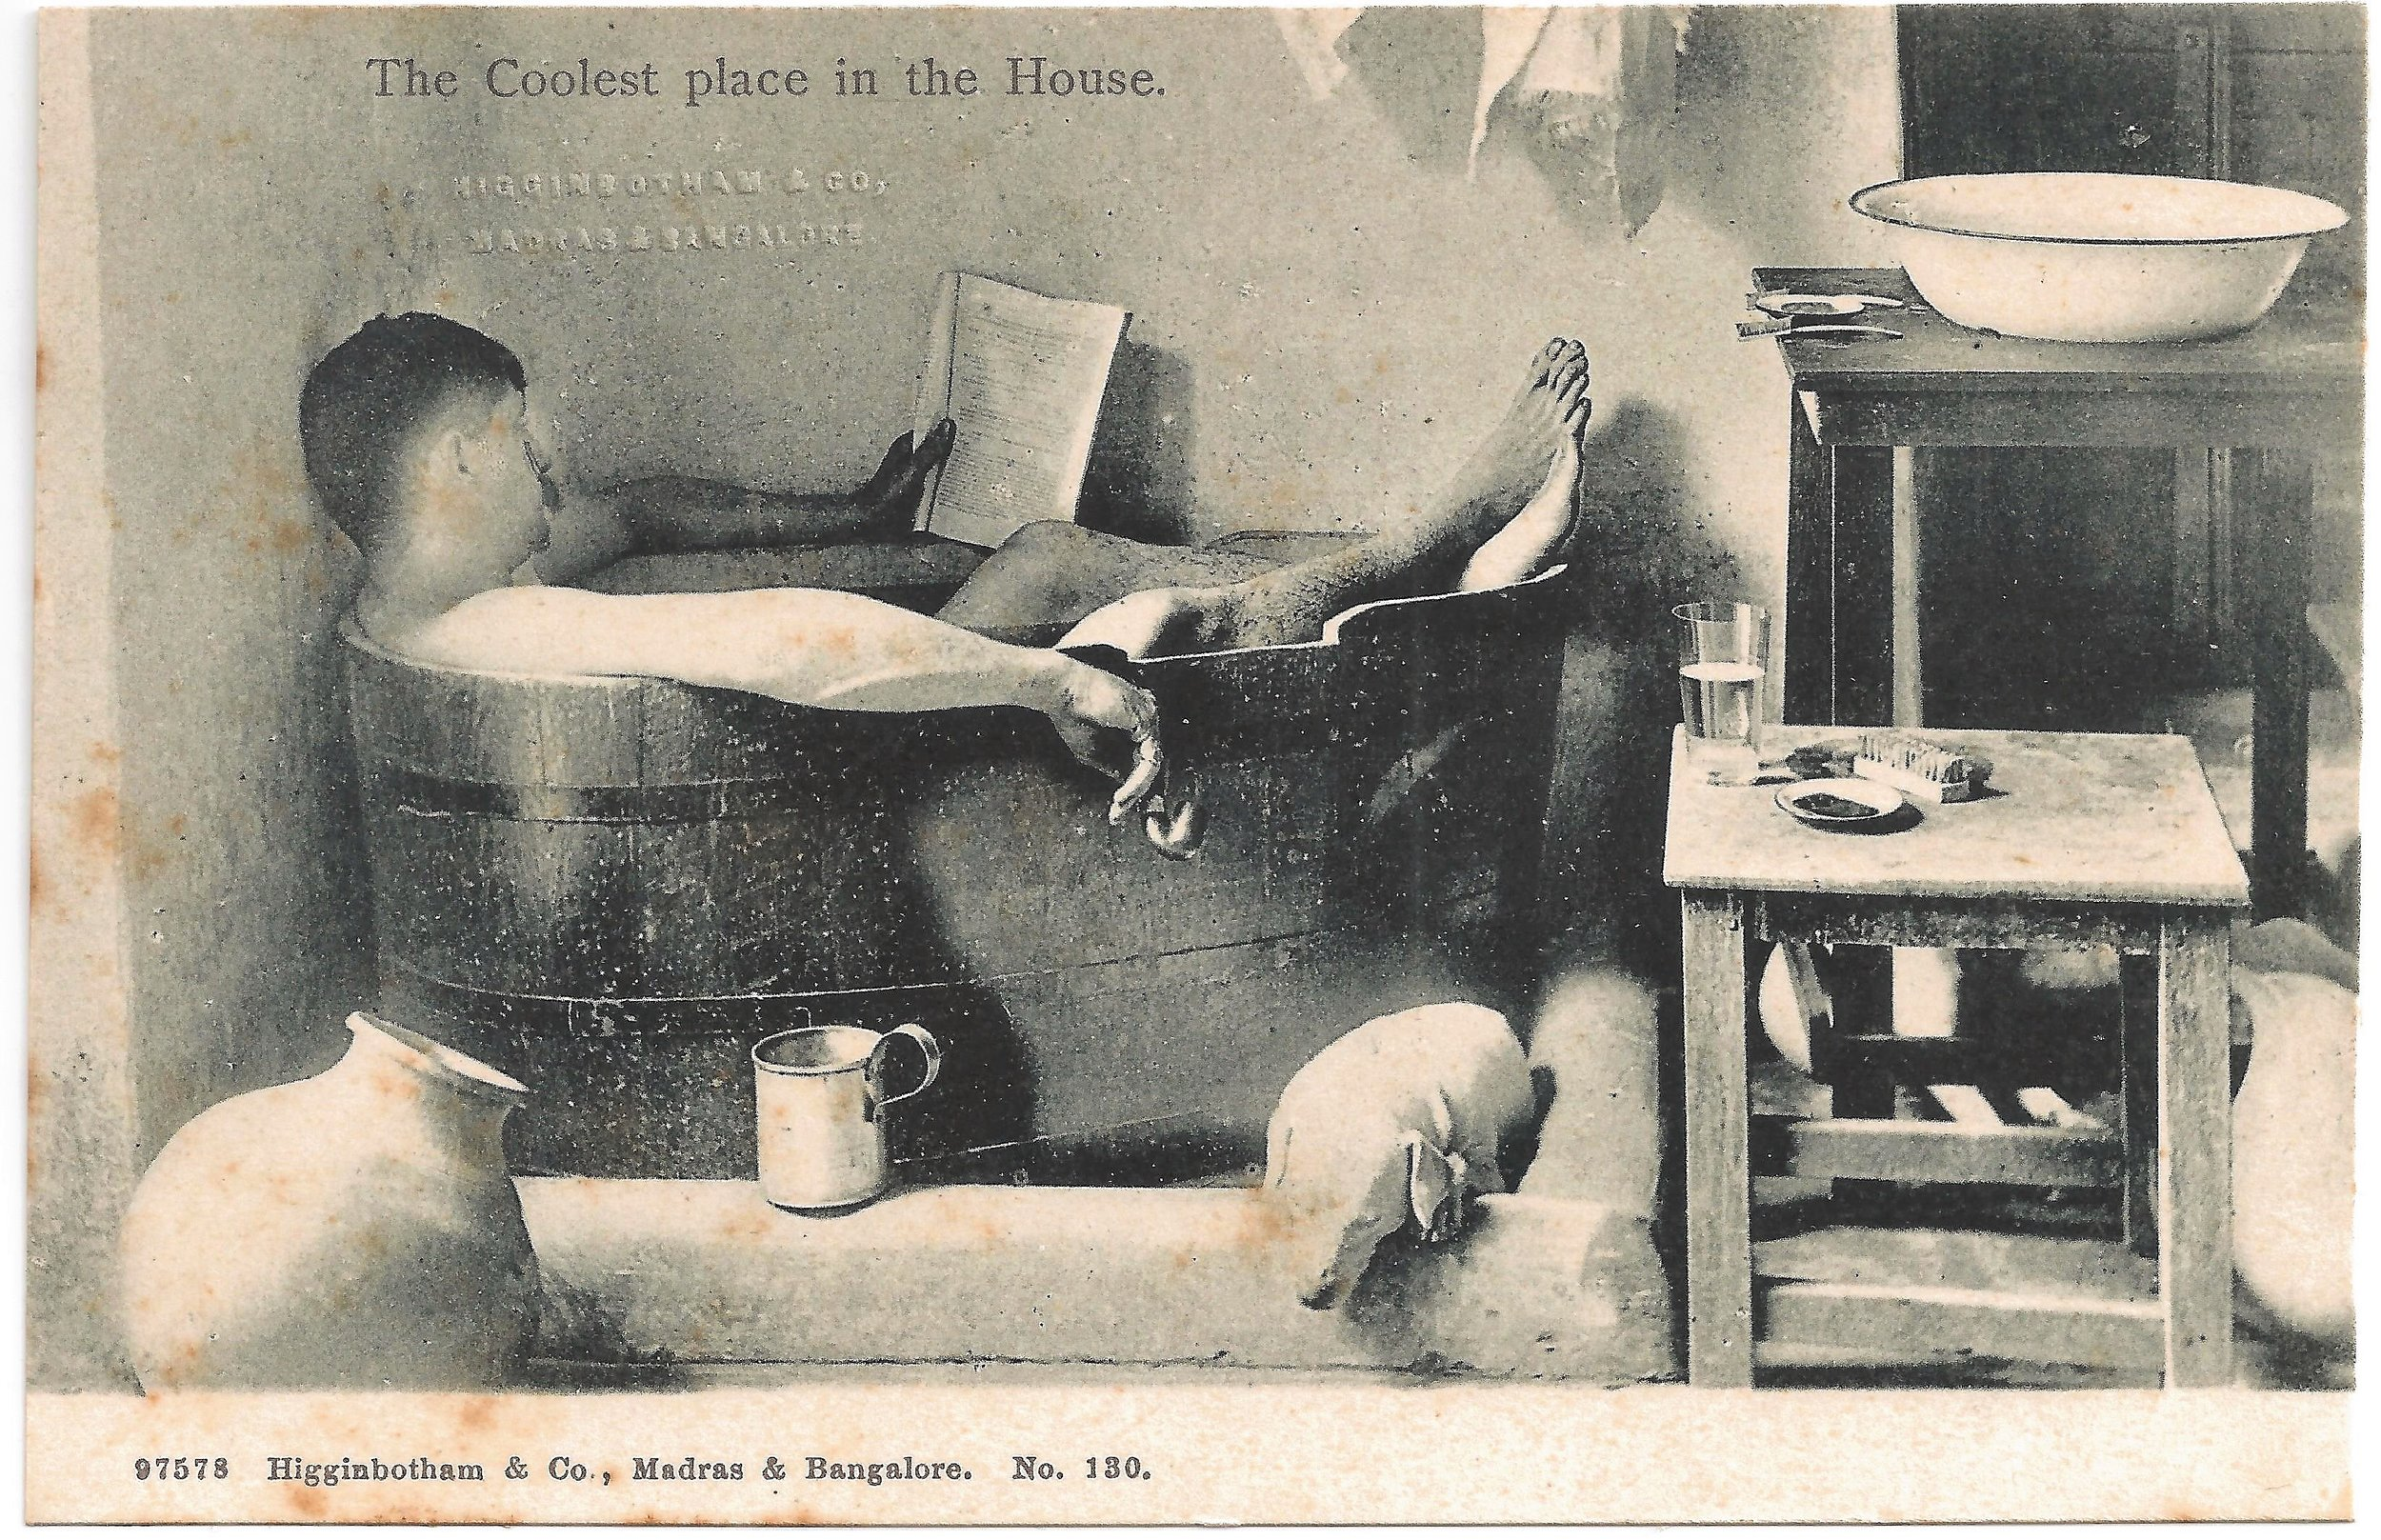 """The Coolest Place in the House"". Published by Higginbotham & Co., Madras & Bangalore. Early 20th century."